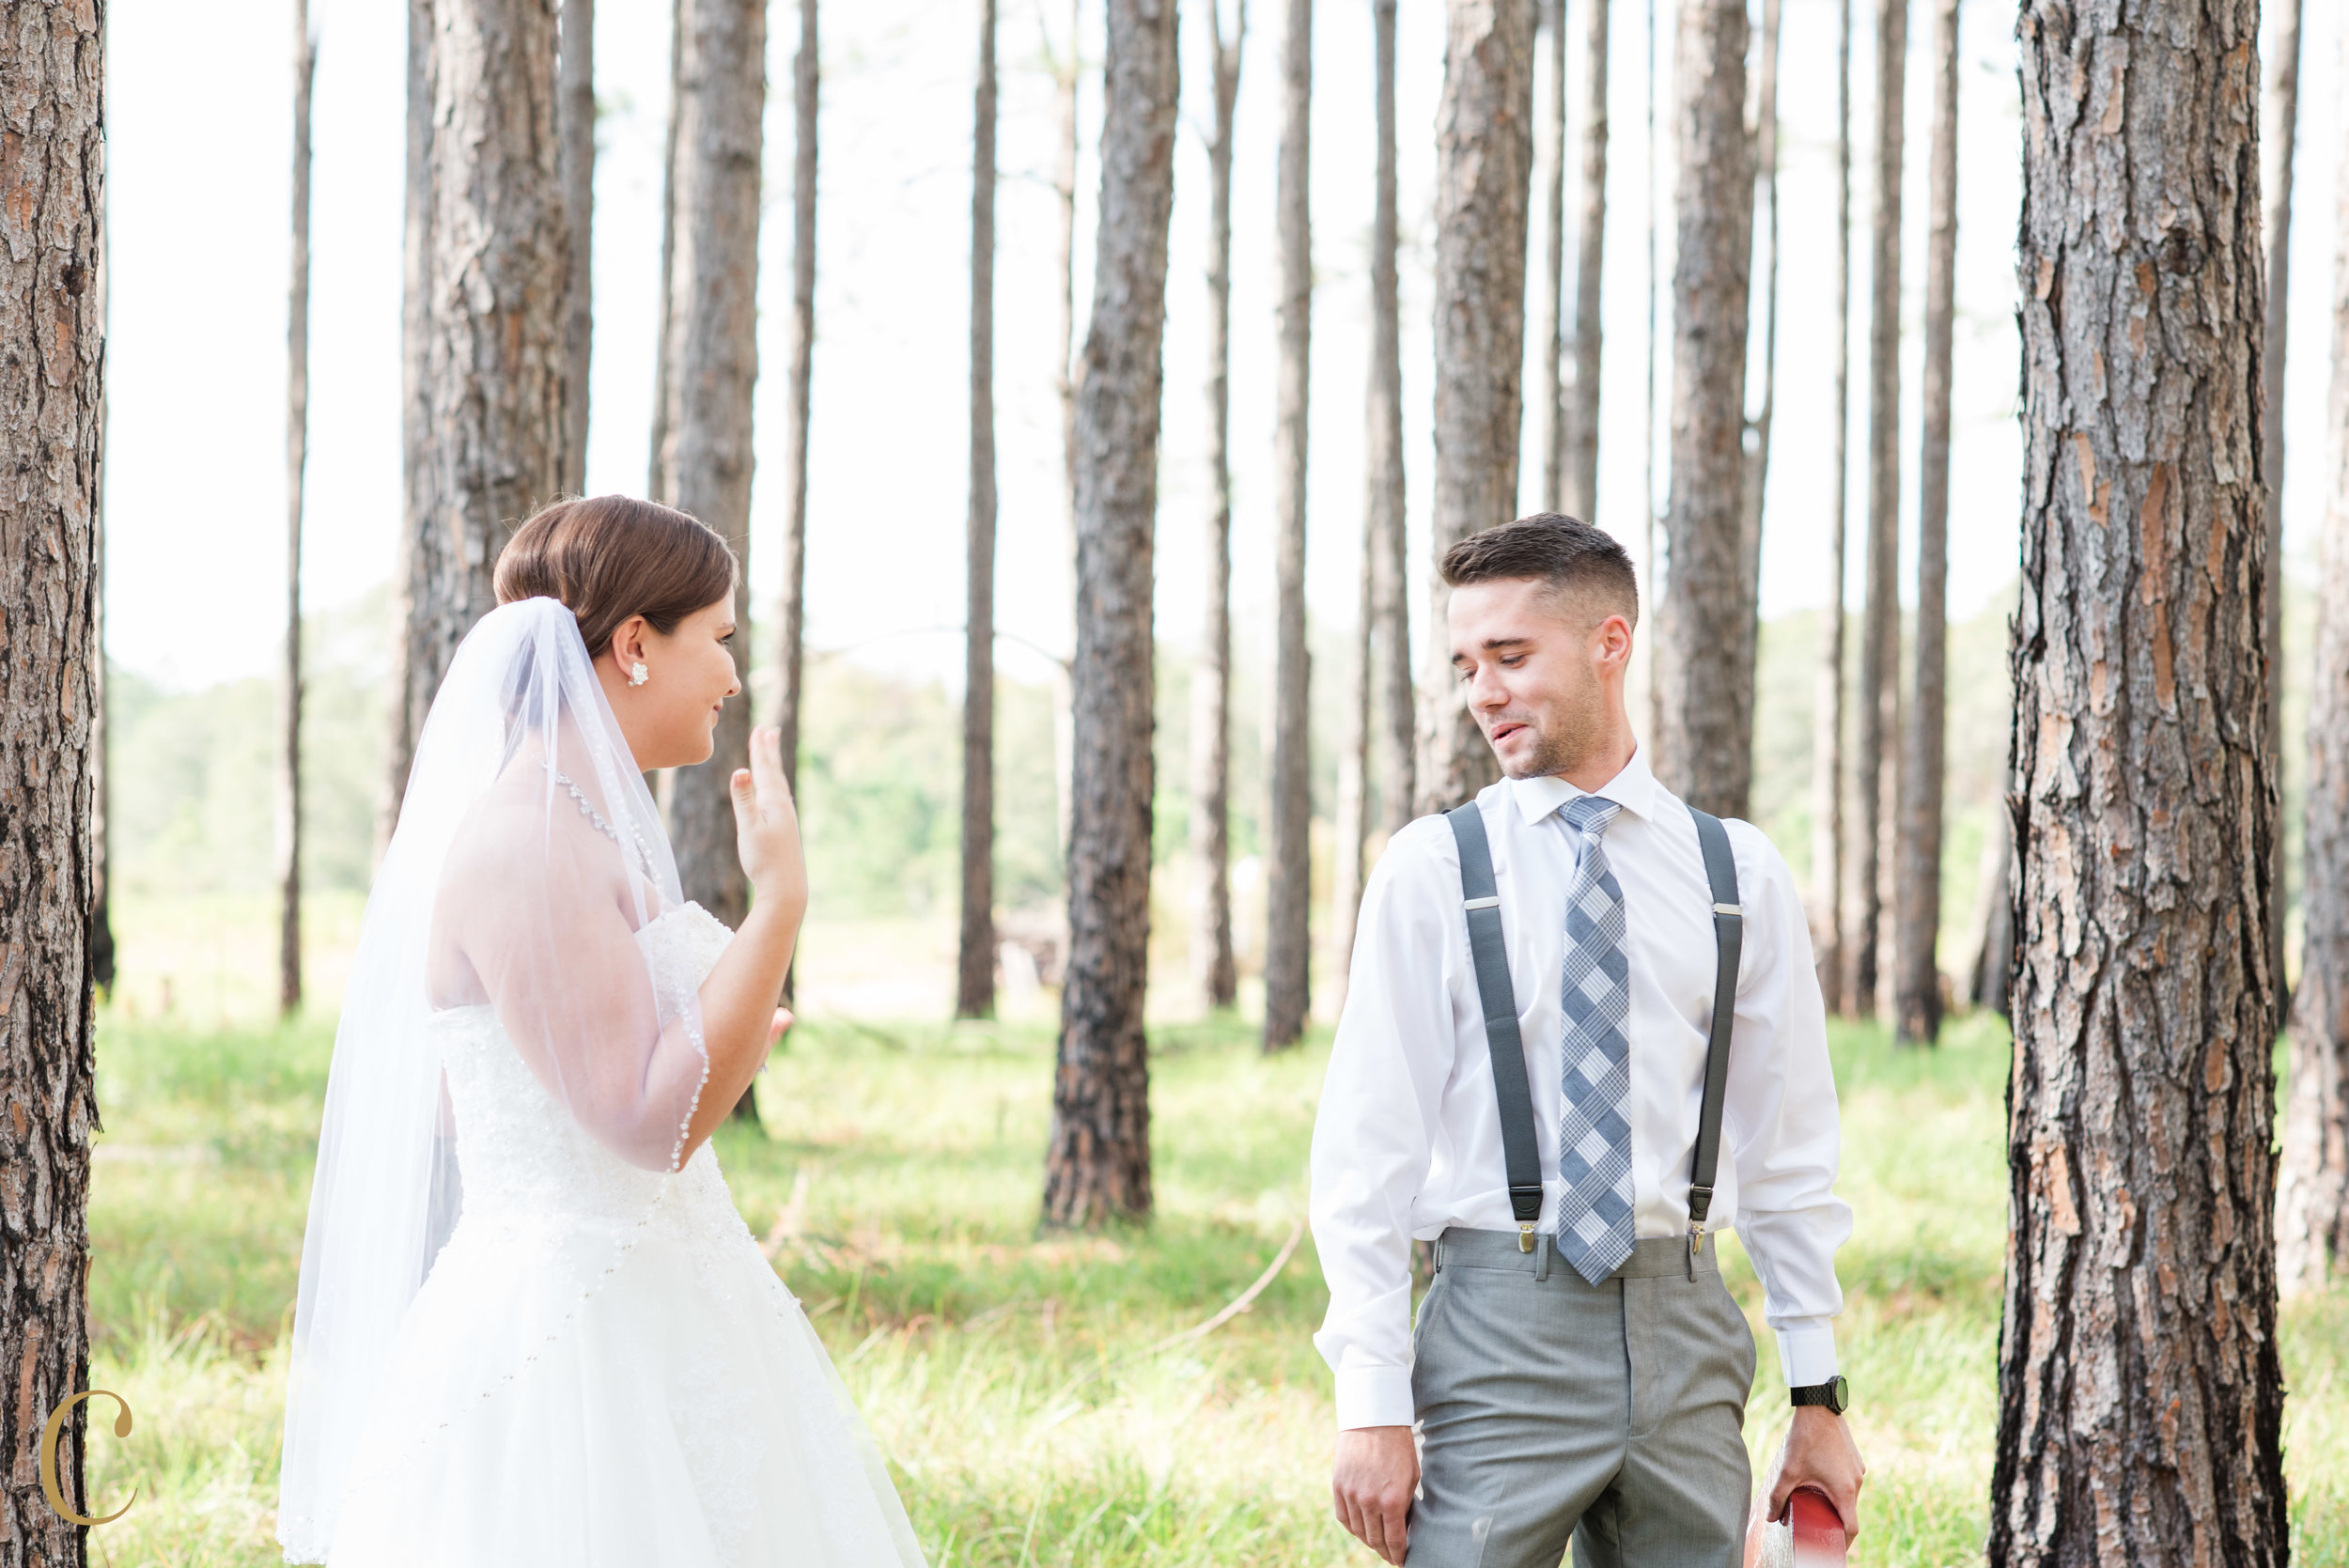 ©christineaustinphotography_jarred_hannah_wedding-7.jpg